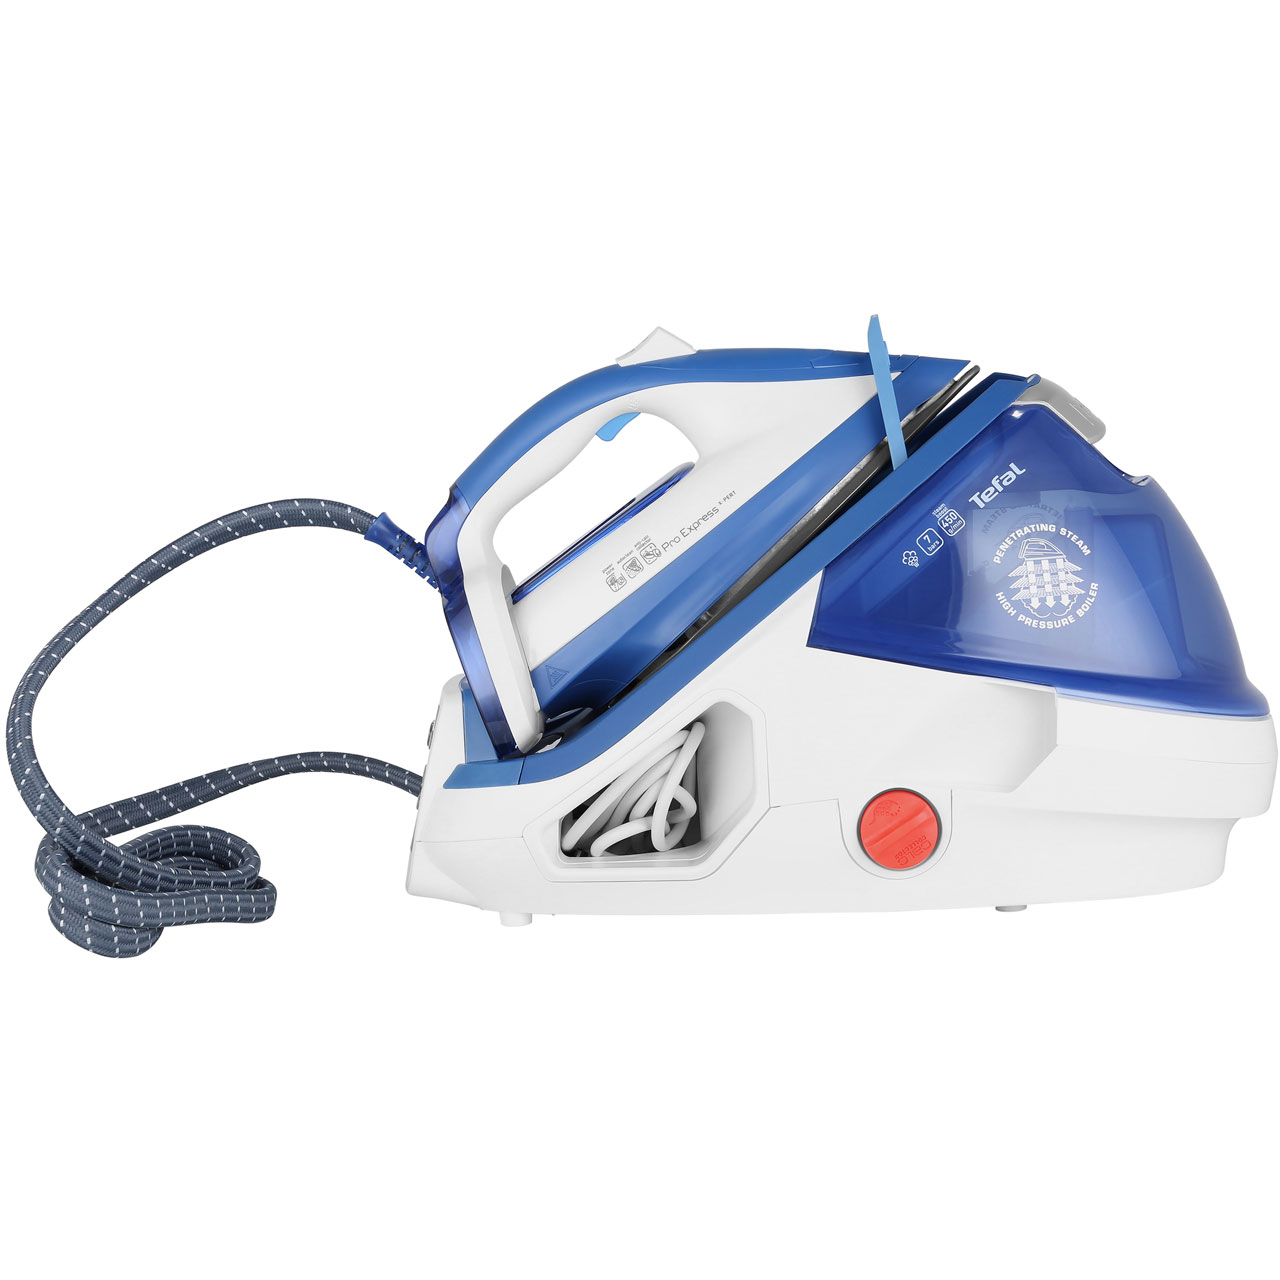 Tefal Pro Express Plus Anti Scale Pressurised Steam Generator Iron - Blue / White